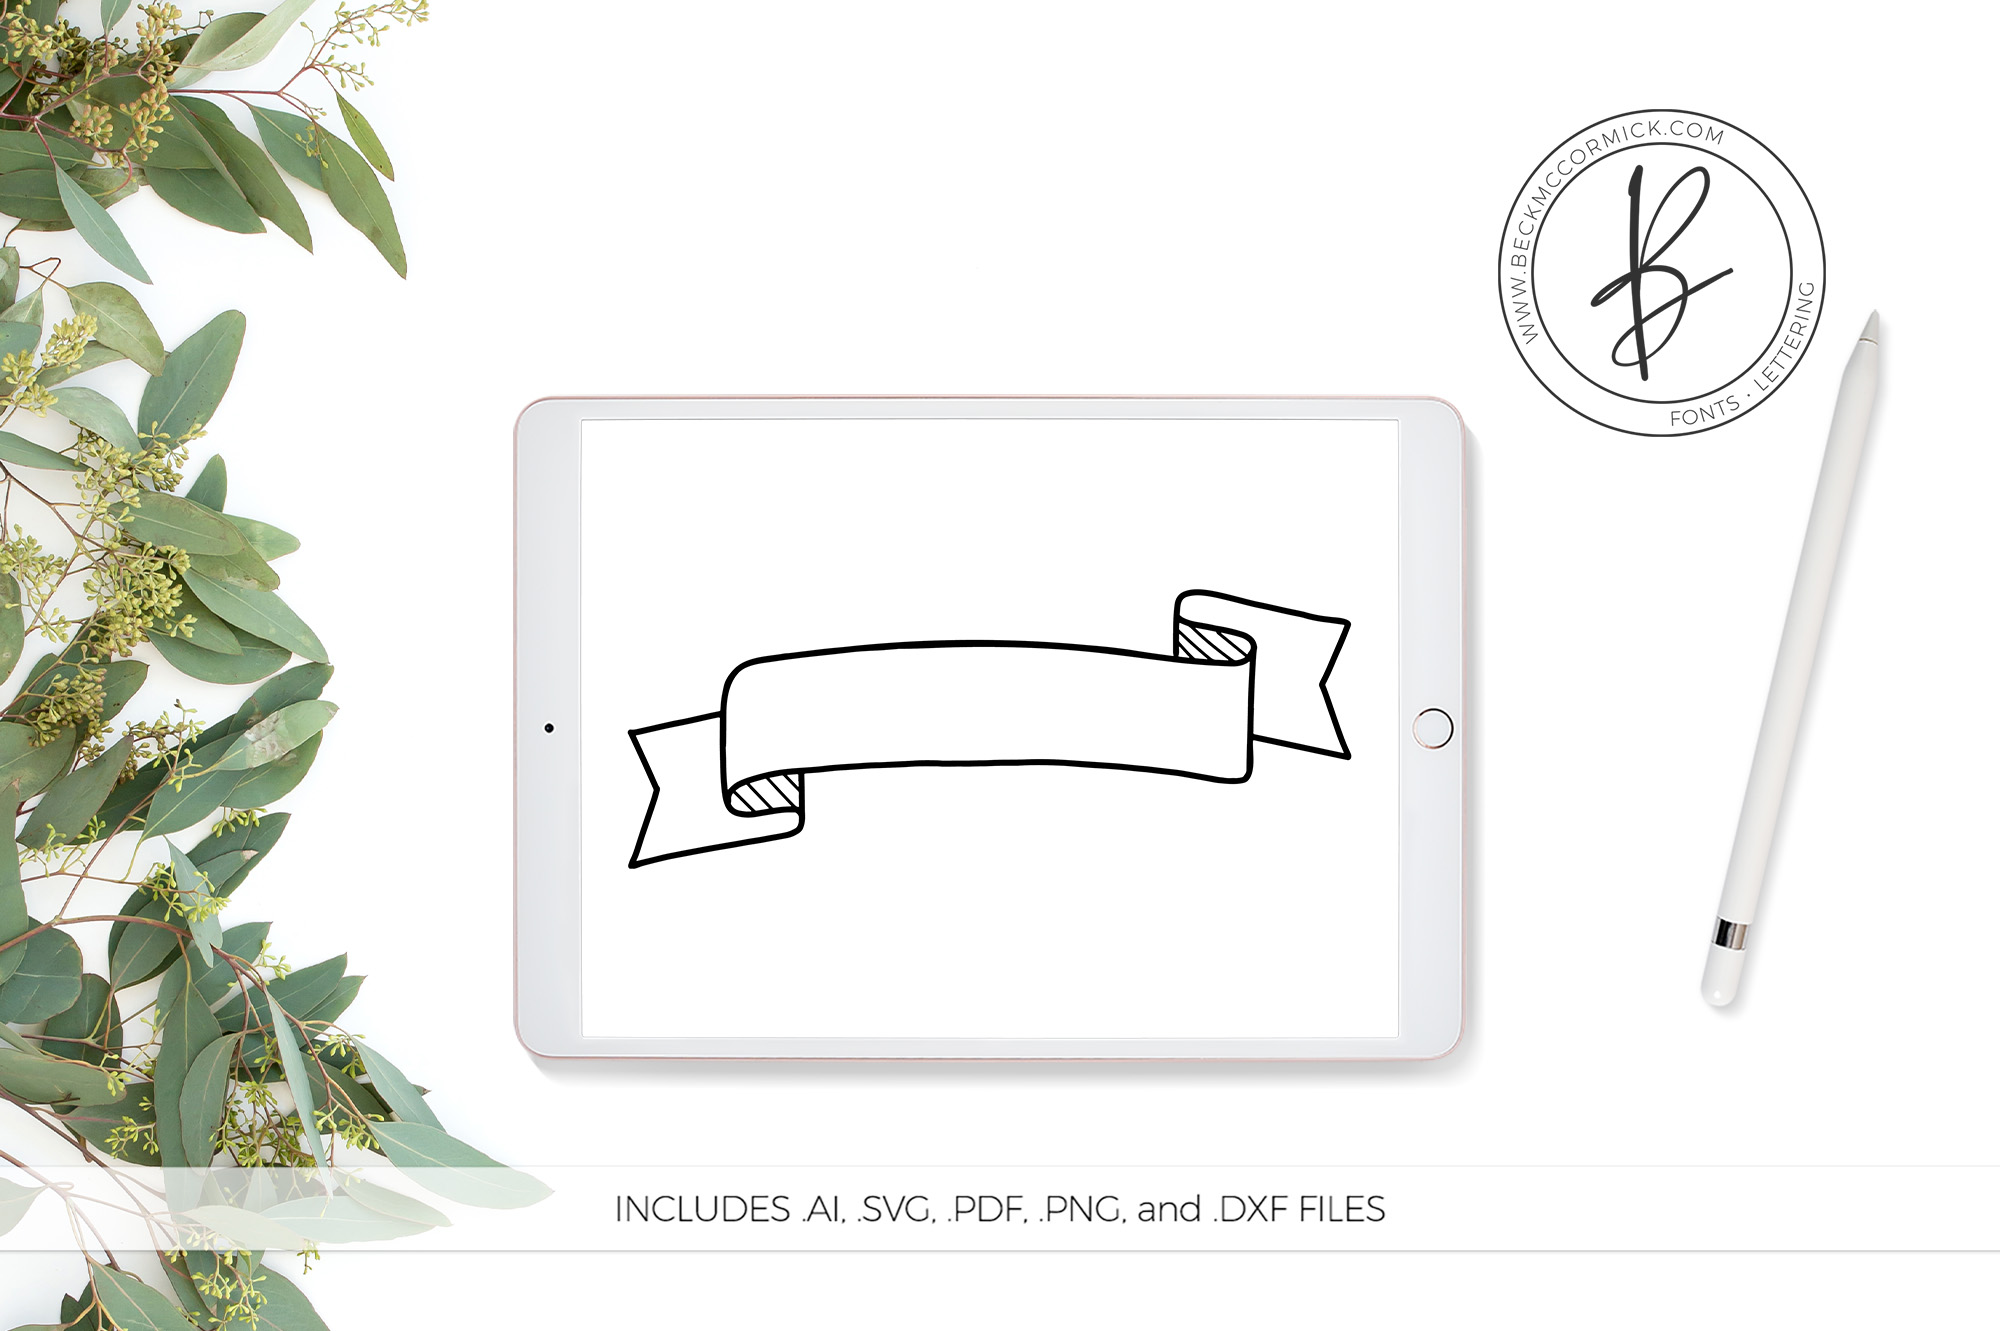 Download Free Banner Grafico Por Beckmccormick Creative Fabrica for Cricut Explore, Silhouette and other cutting machines.